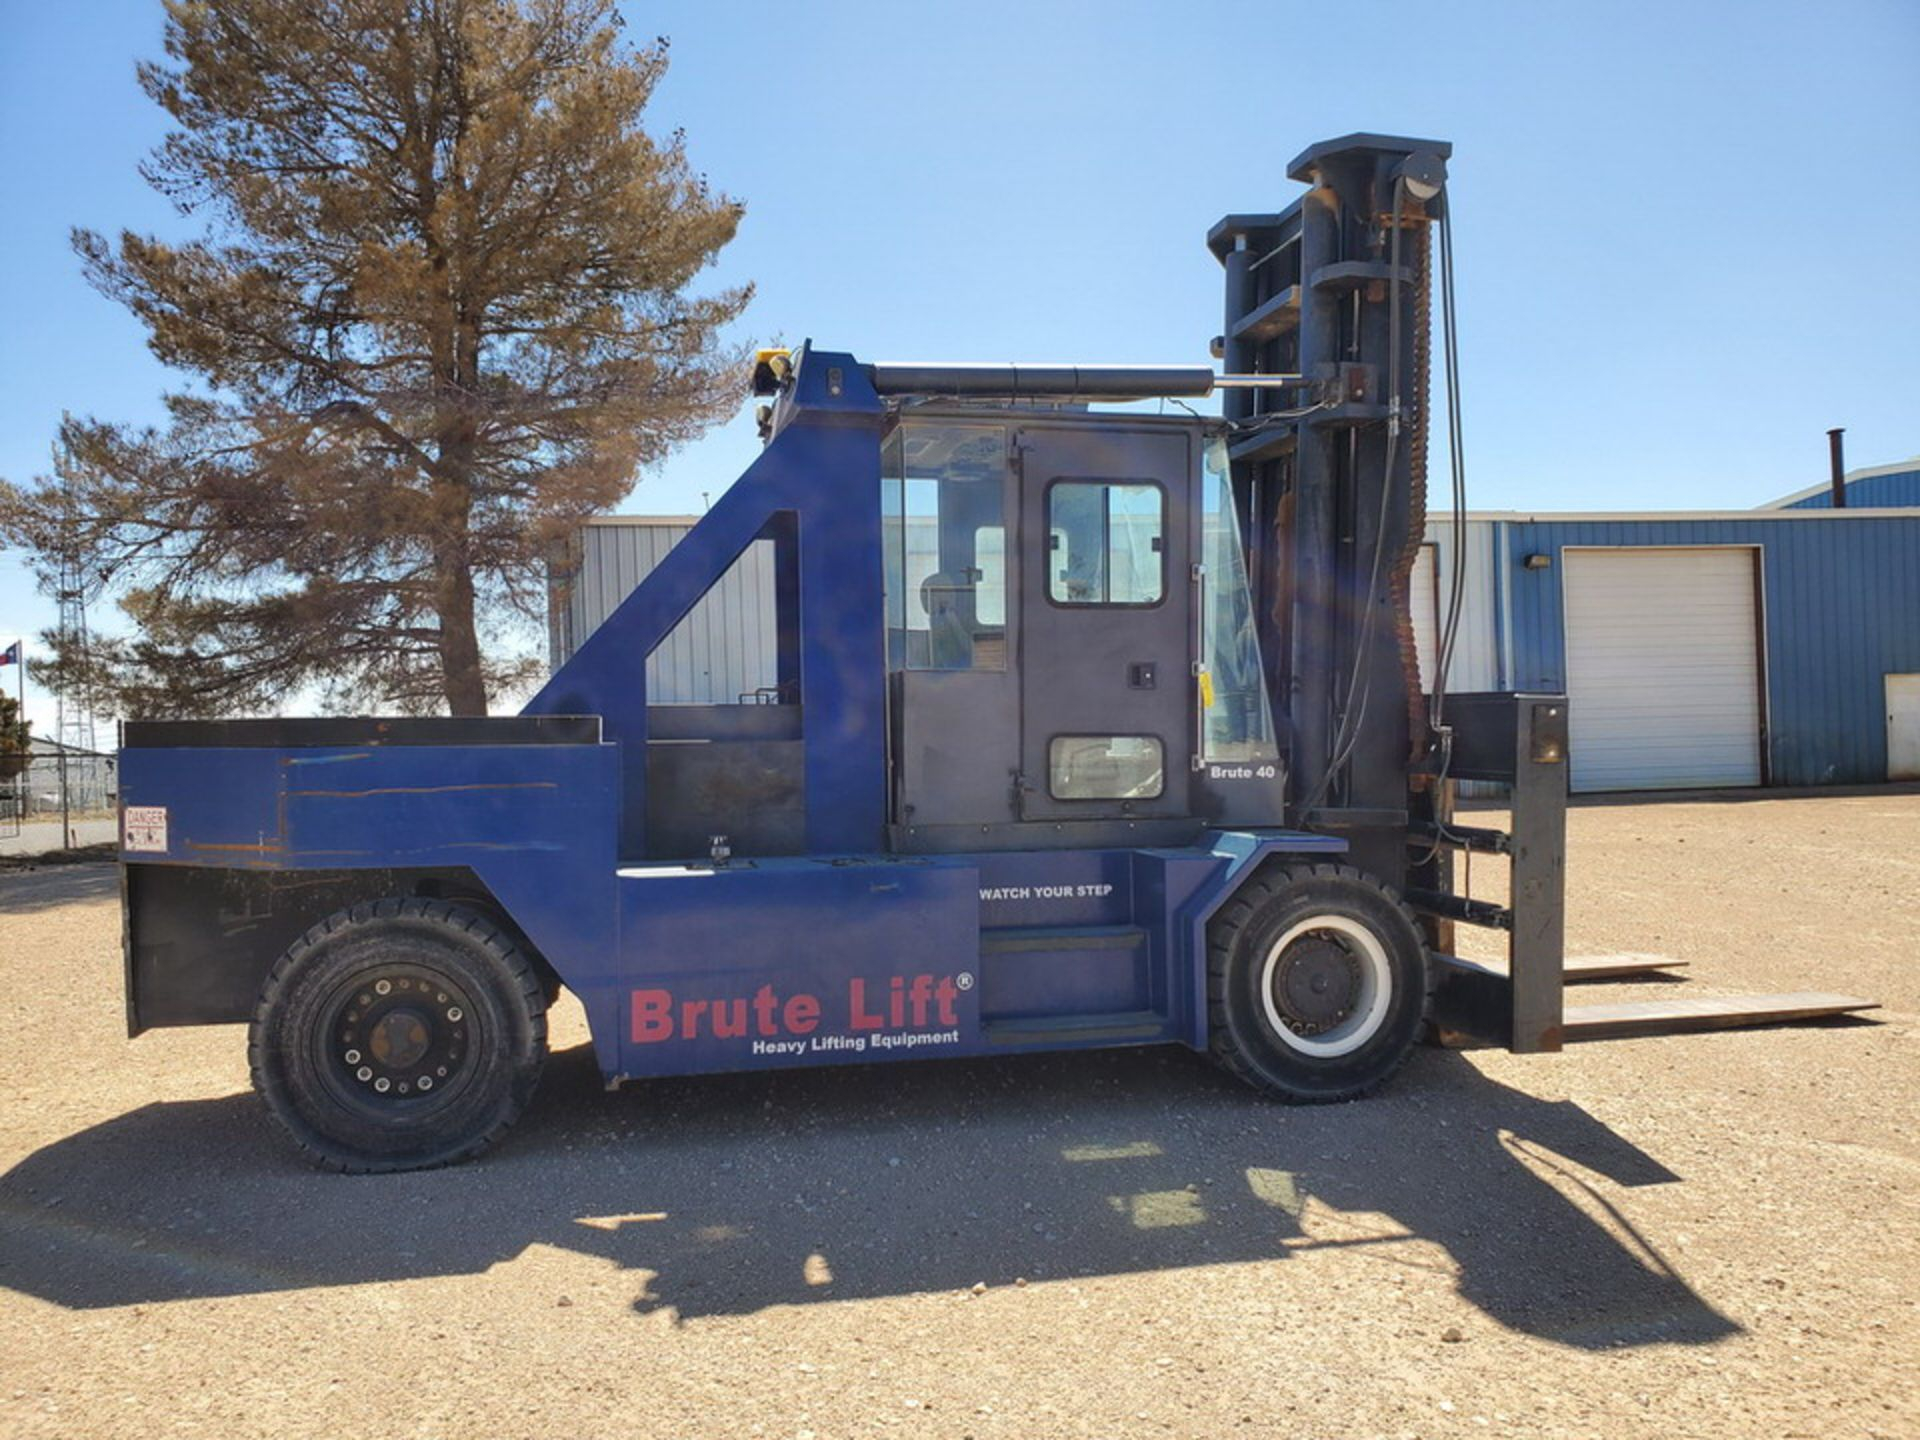 2012 Brute Lift BT40-48 Forklift 40H Cap., Engine Hrs: 3,389.3 - Image 5 of 17